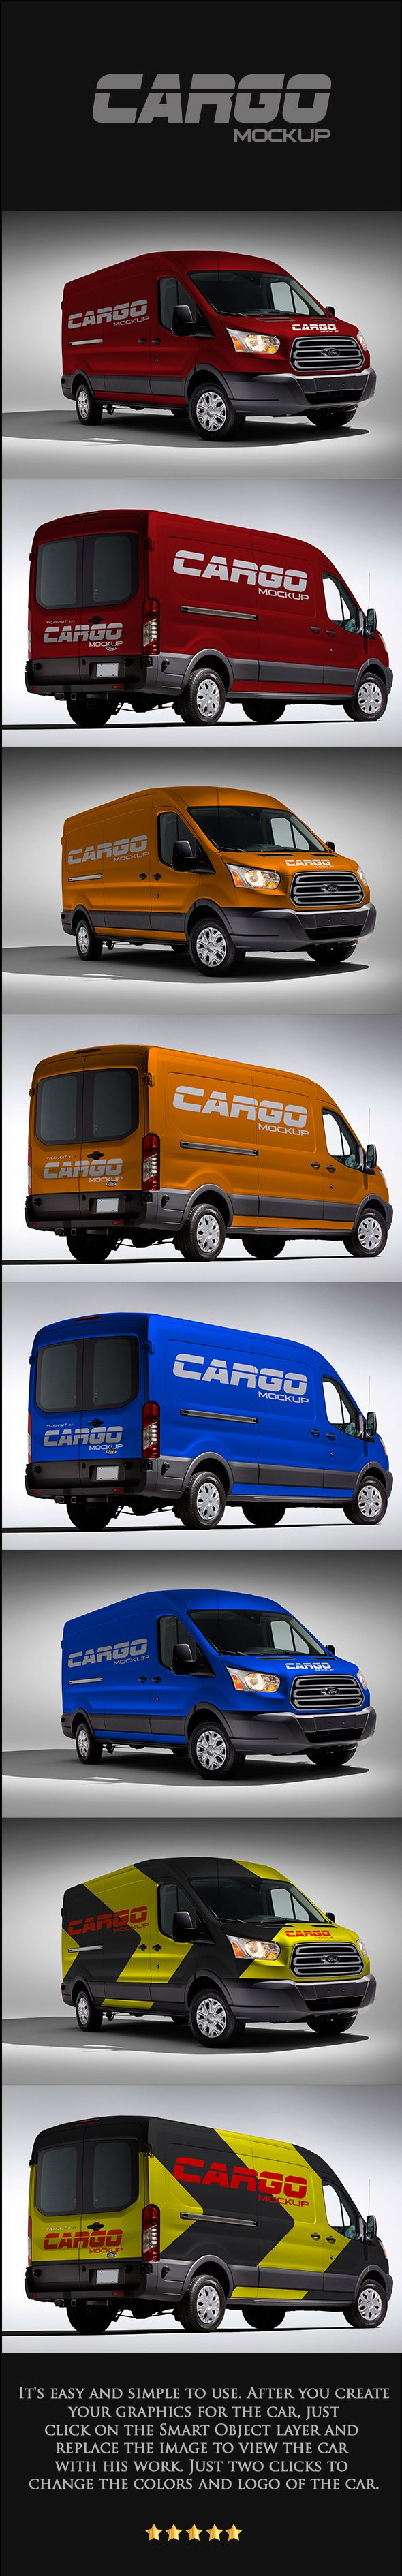 Free Mock-Up Van Cargo on Behance by Rogerio Marcos